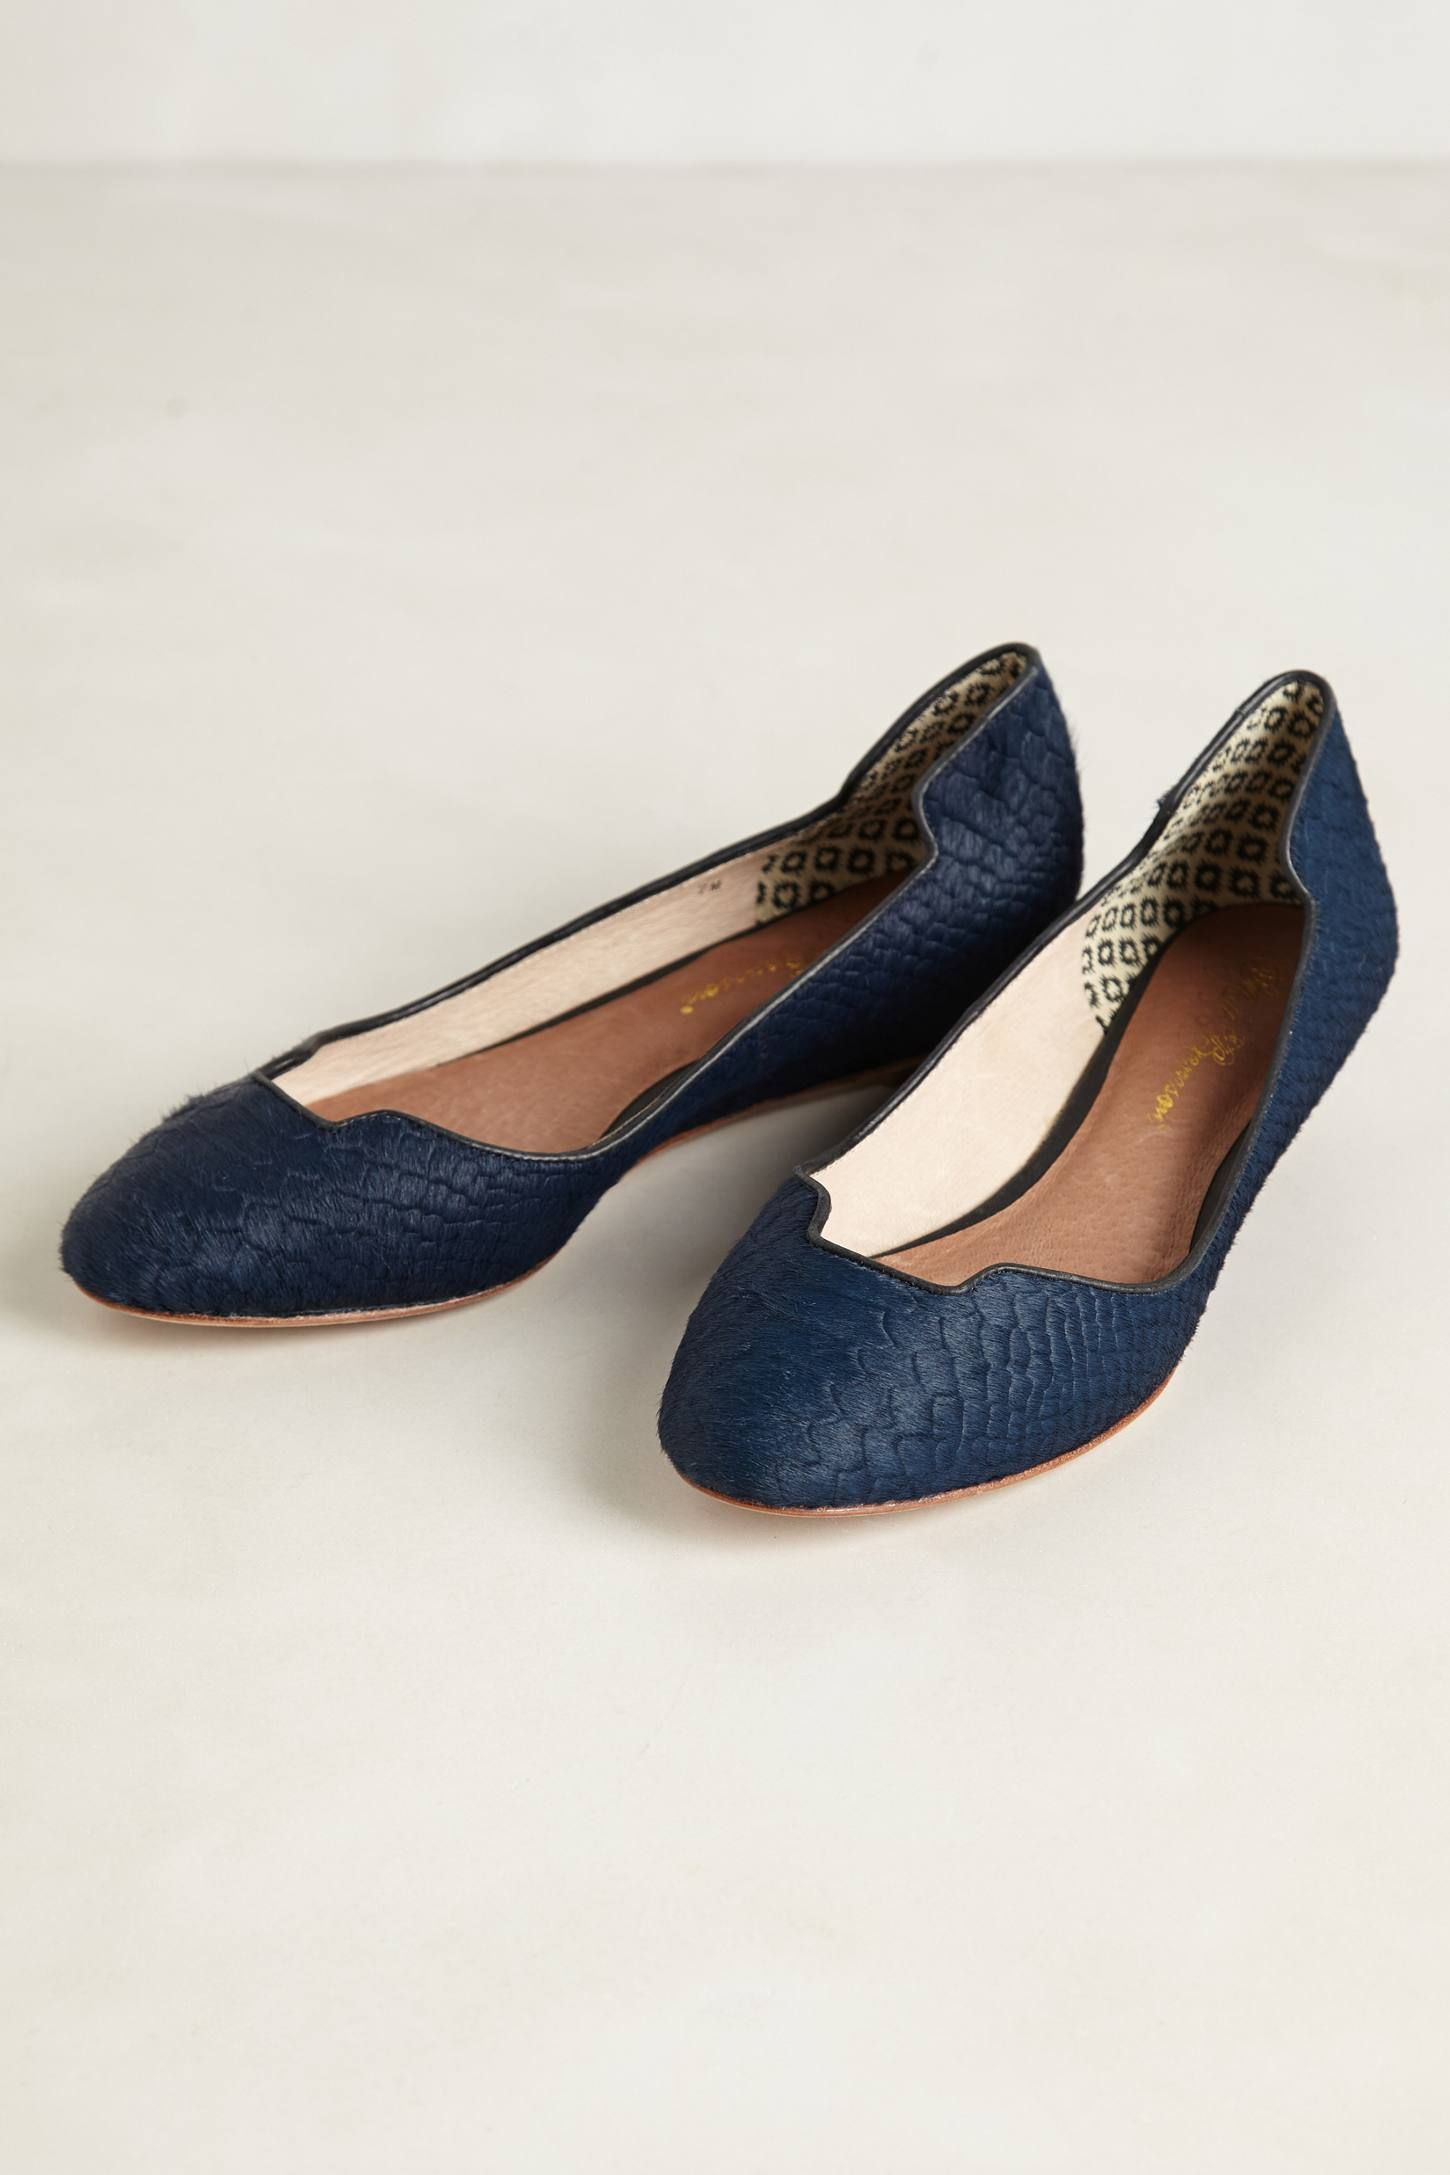 ebea5271d7d0 Izabel Mini-Wedges - anthropologie.com Cute Flats